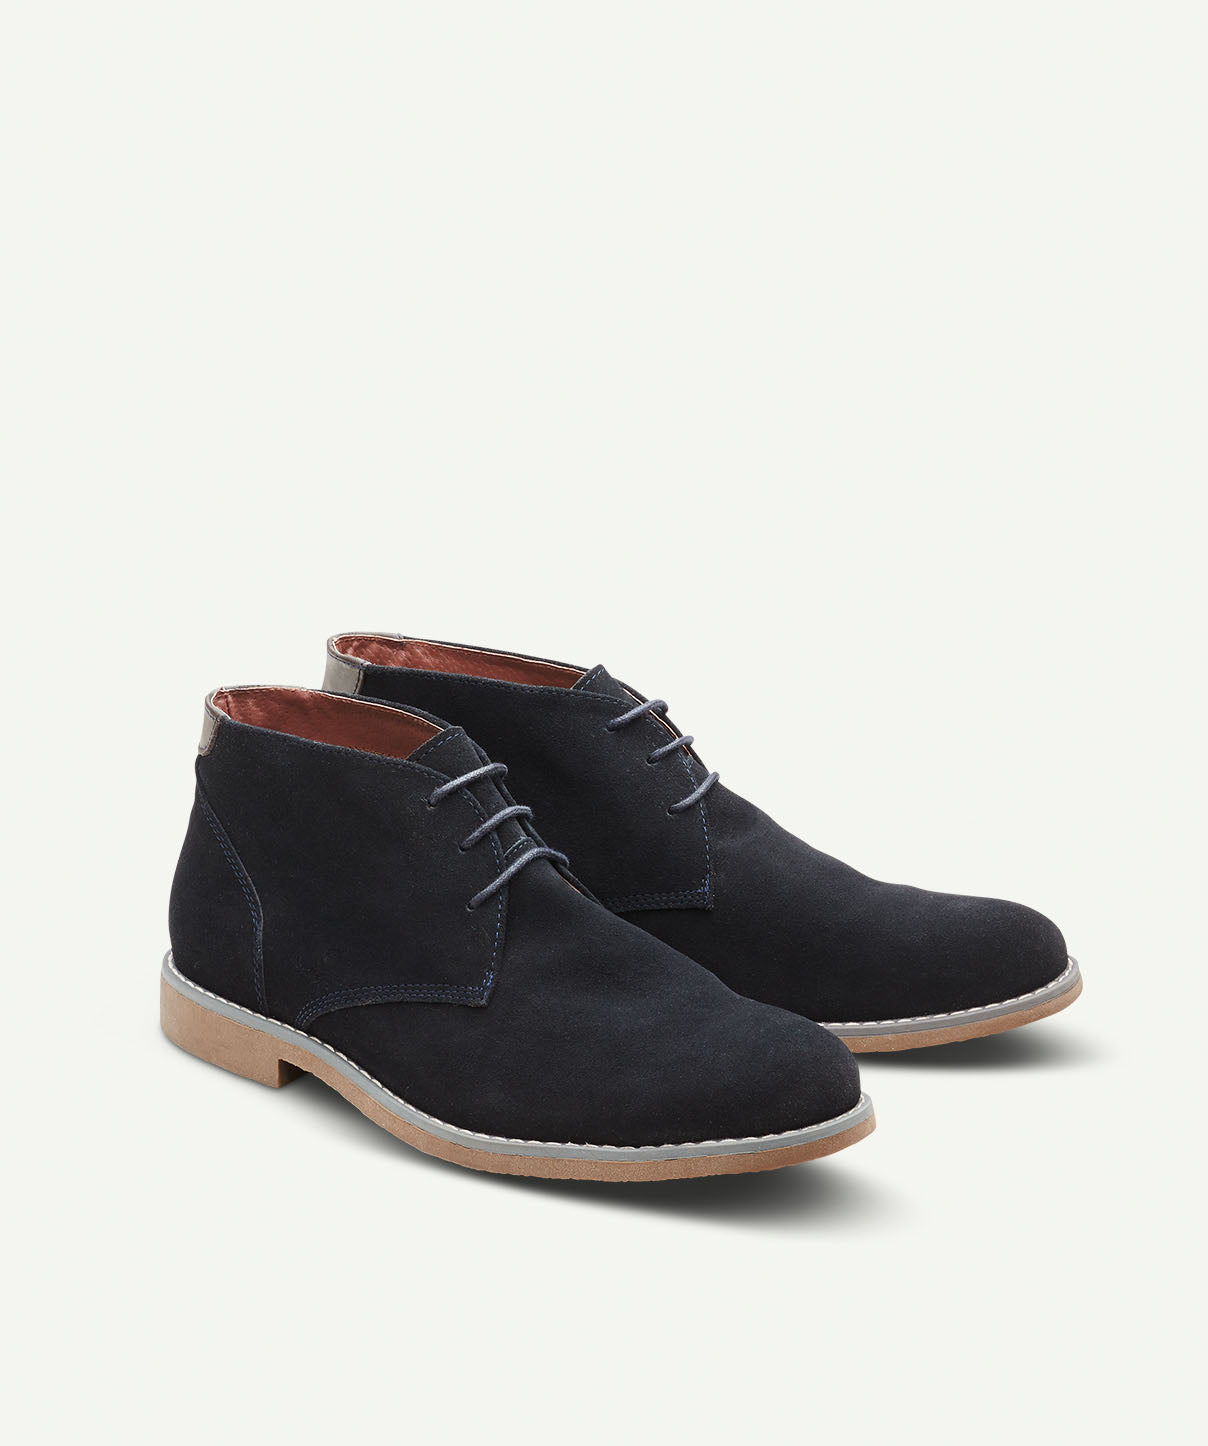 hush puppies boots sale